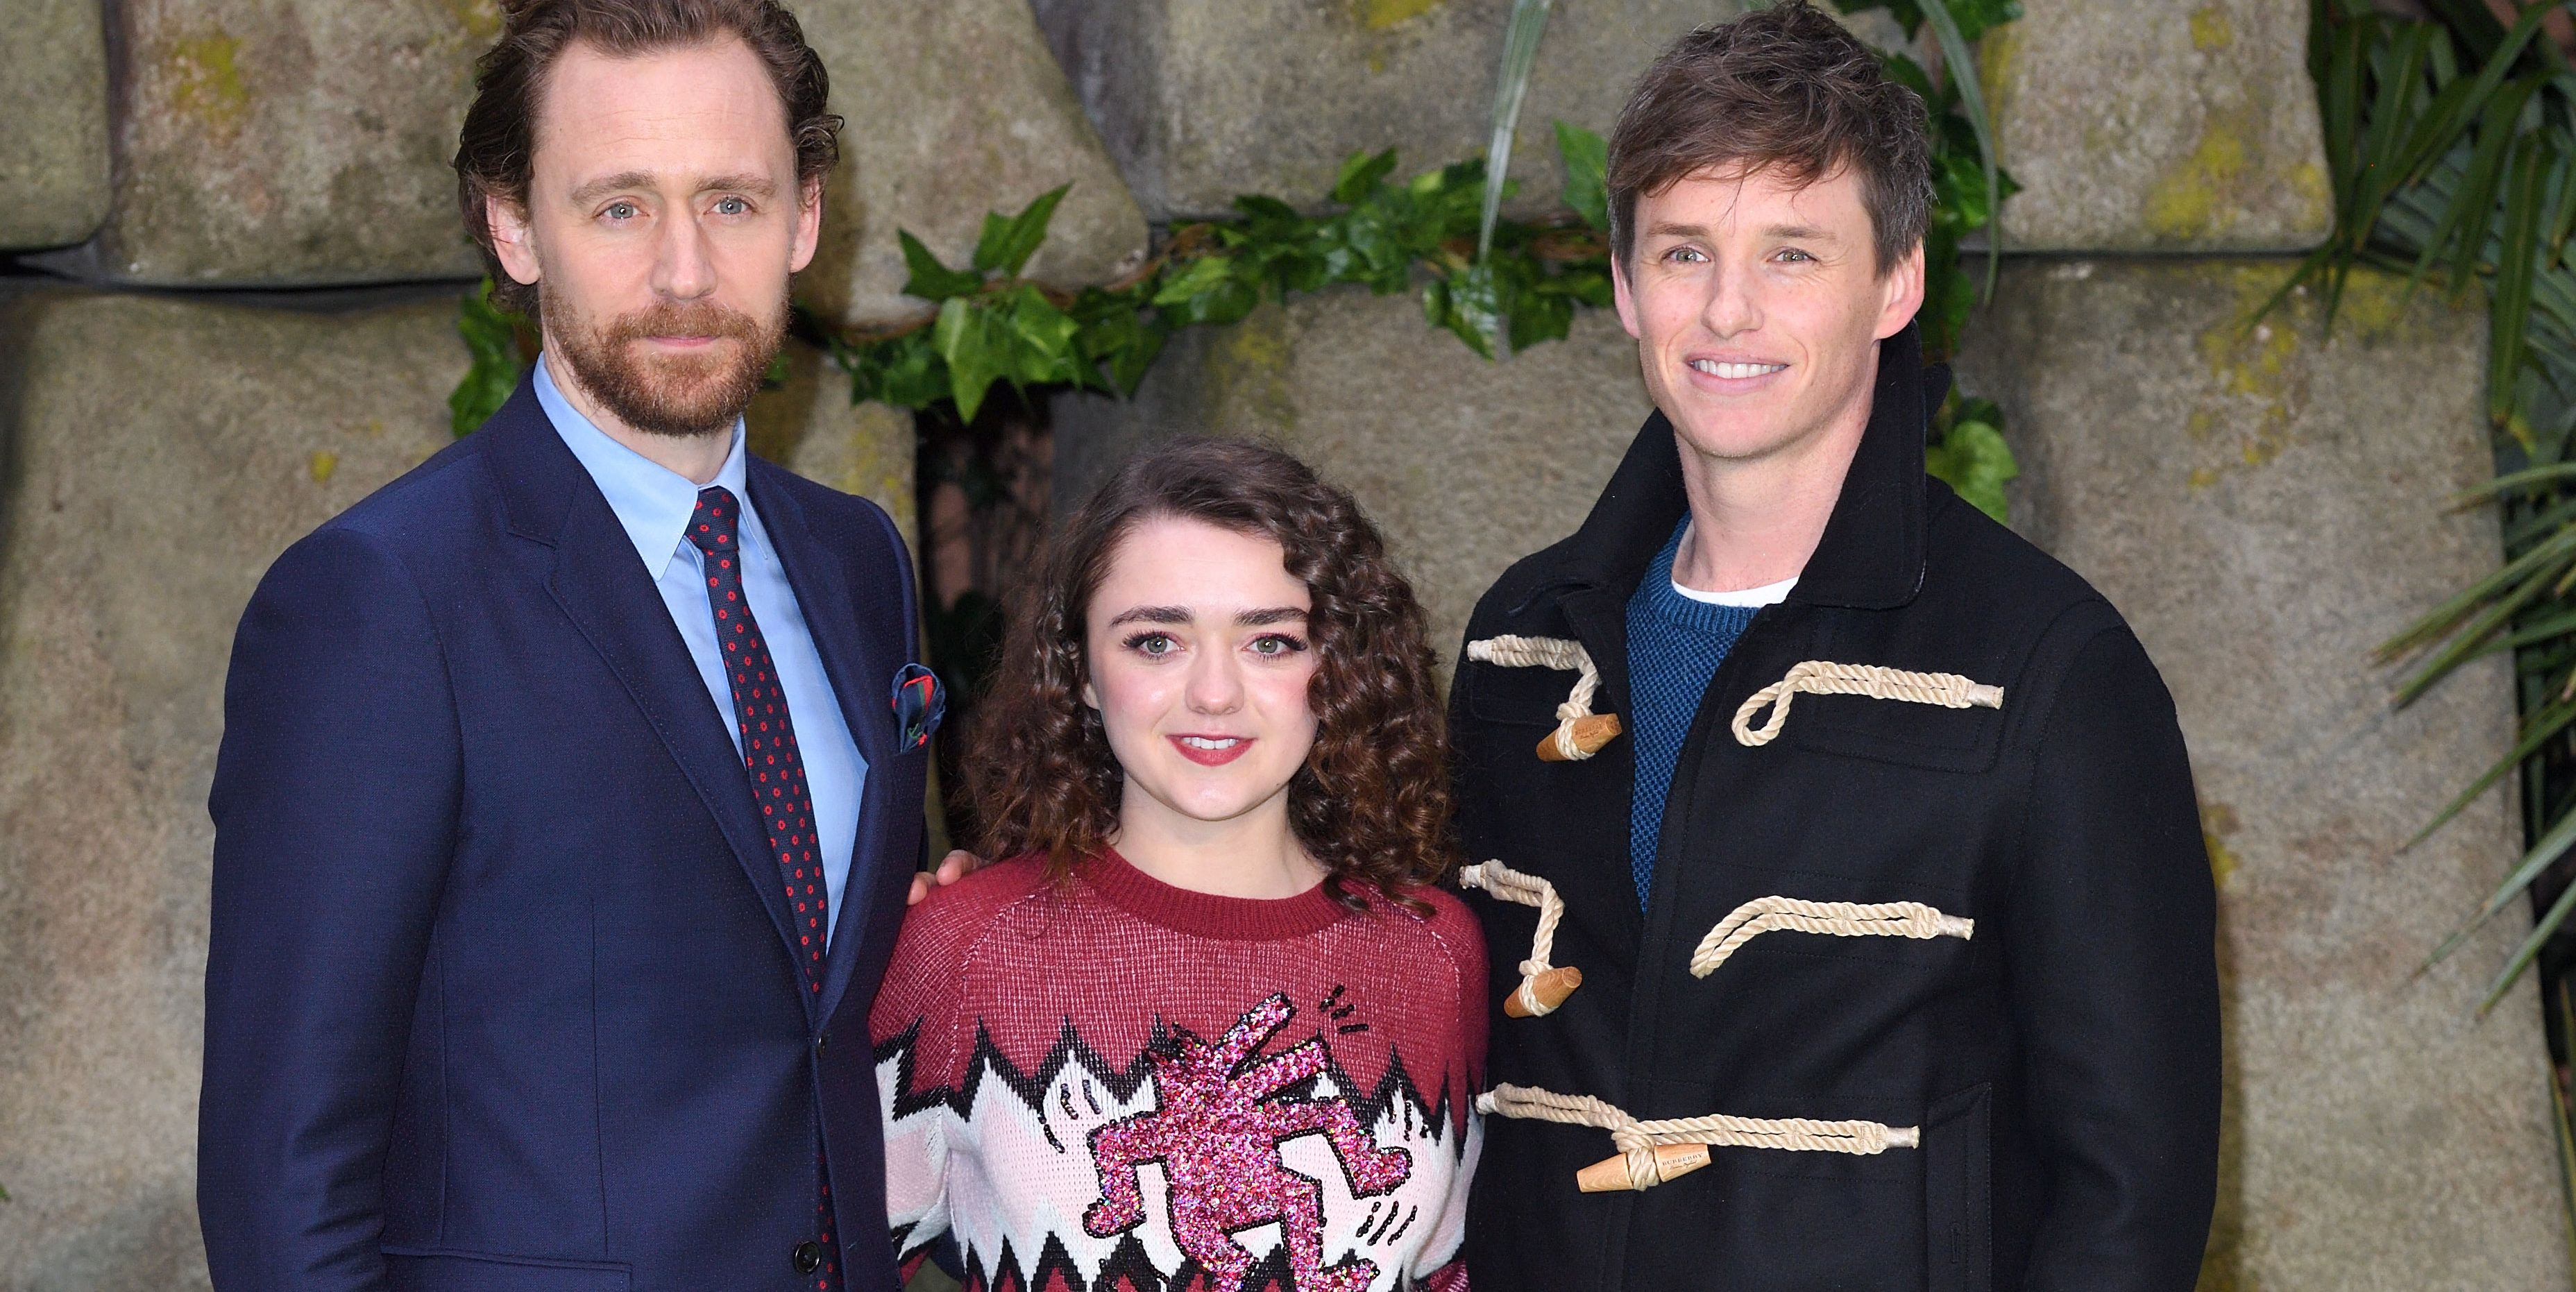 ​Tom Hiddleston, Maisie Williams y Eddie Redmayne, tres cavernícolas con buenas pintas